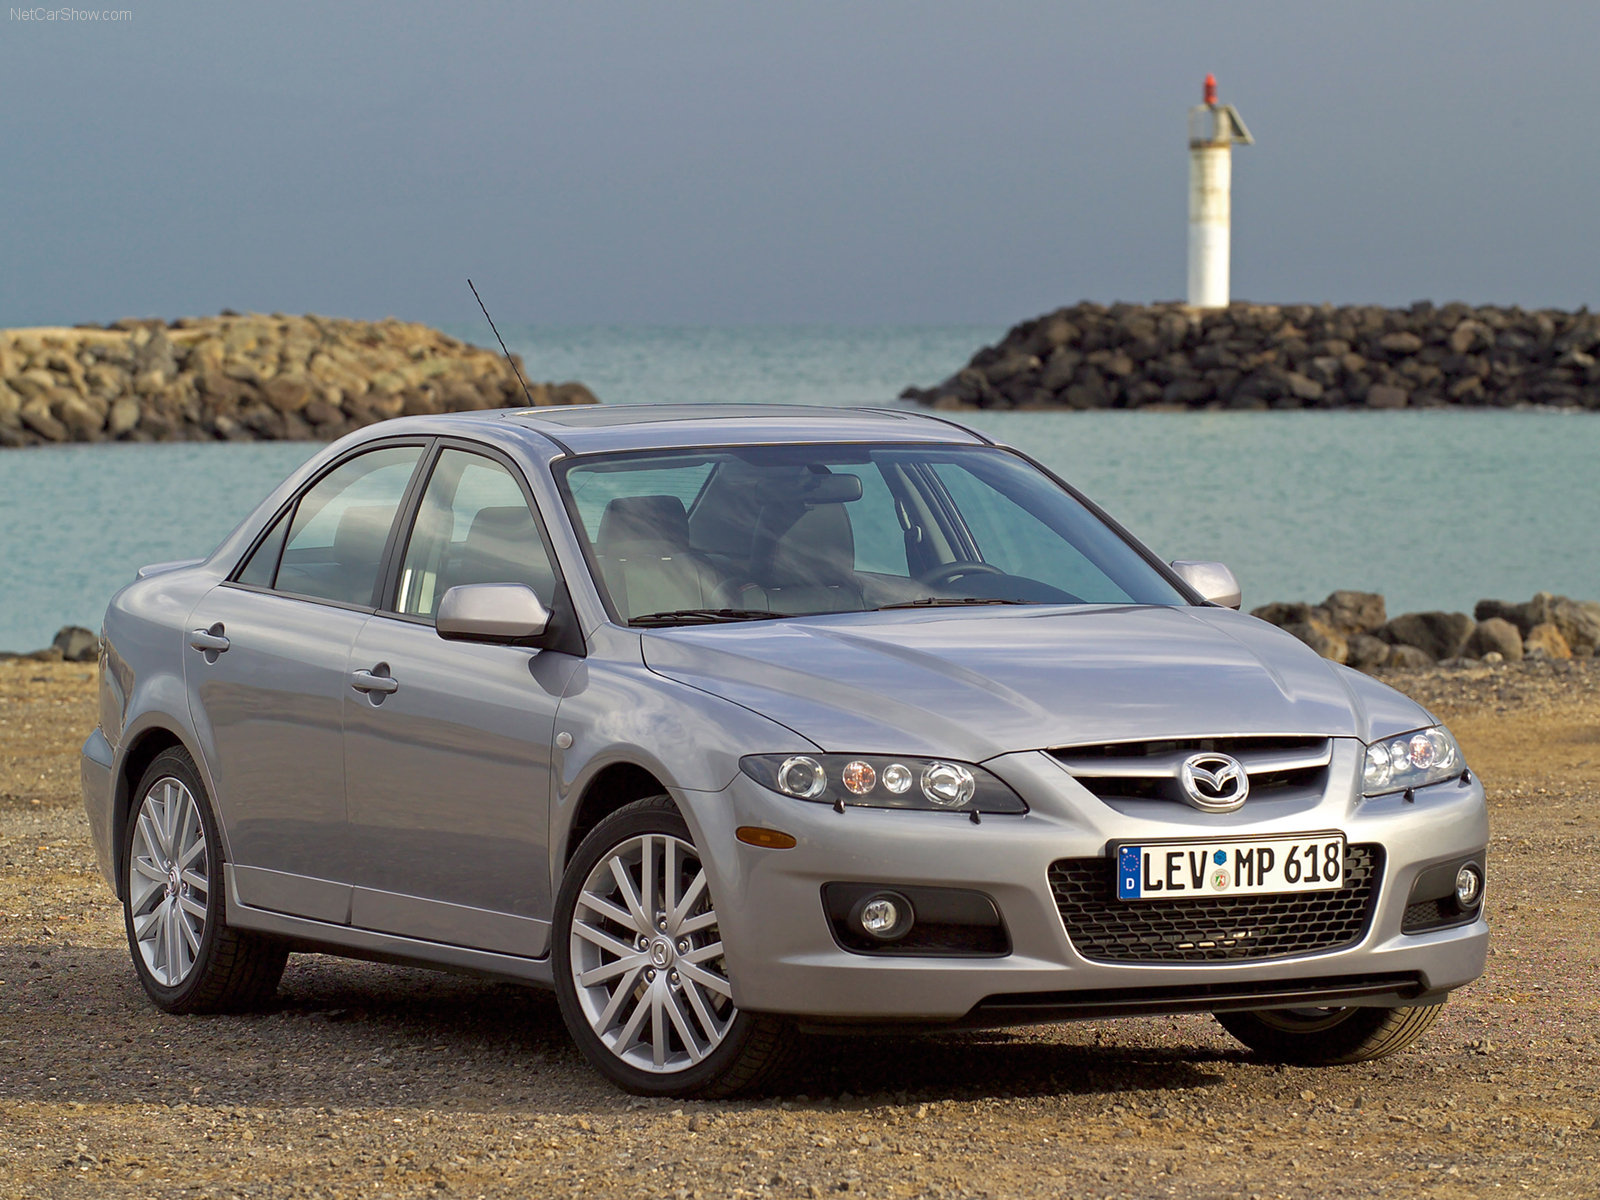 Mazda 6 mps photos photogallery with 50 pics carsbase com